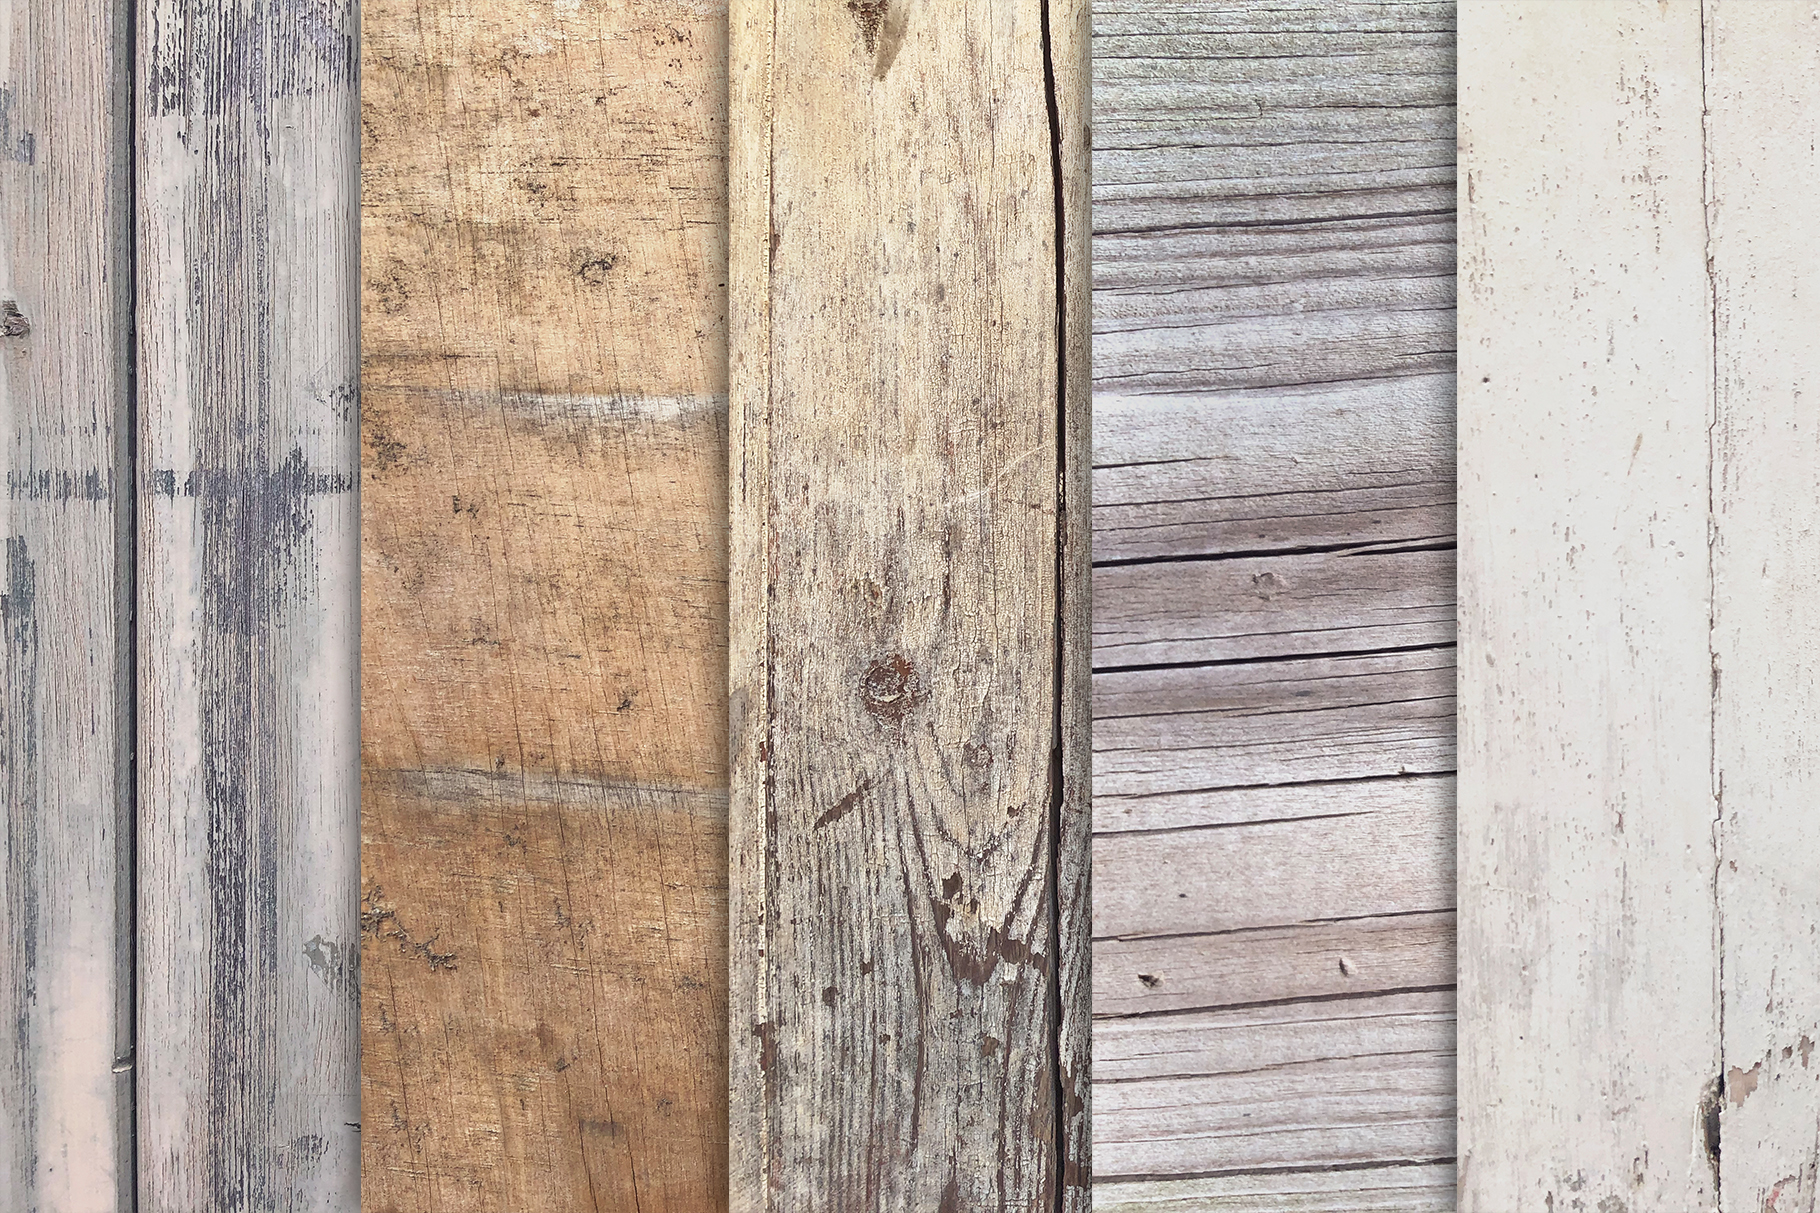 Old Wood Textures x10 vol2 example image 2